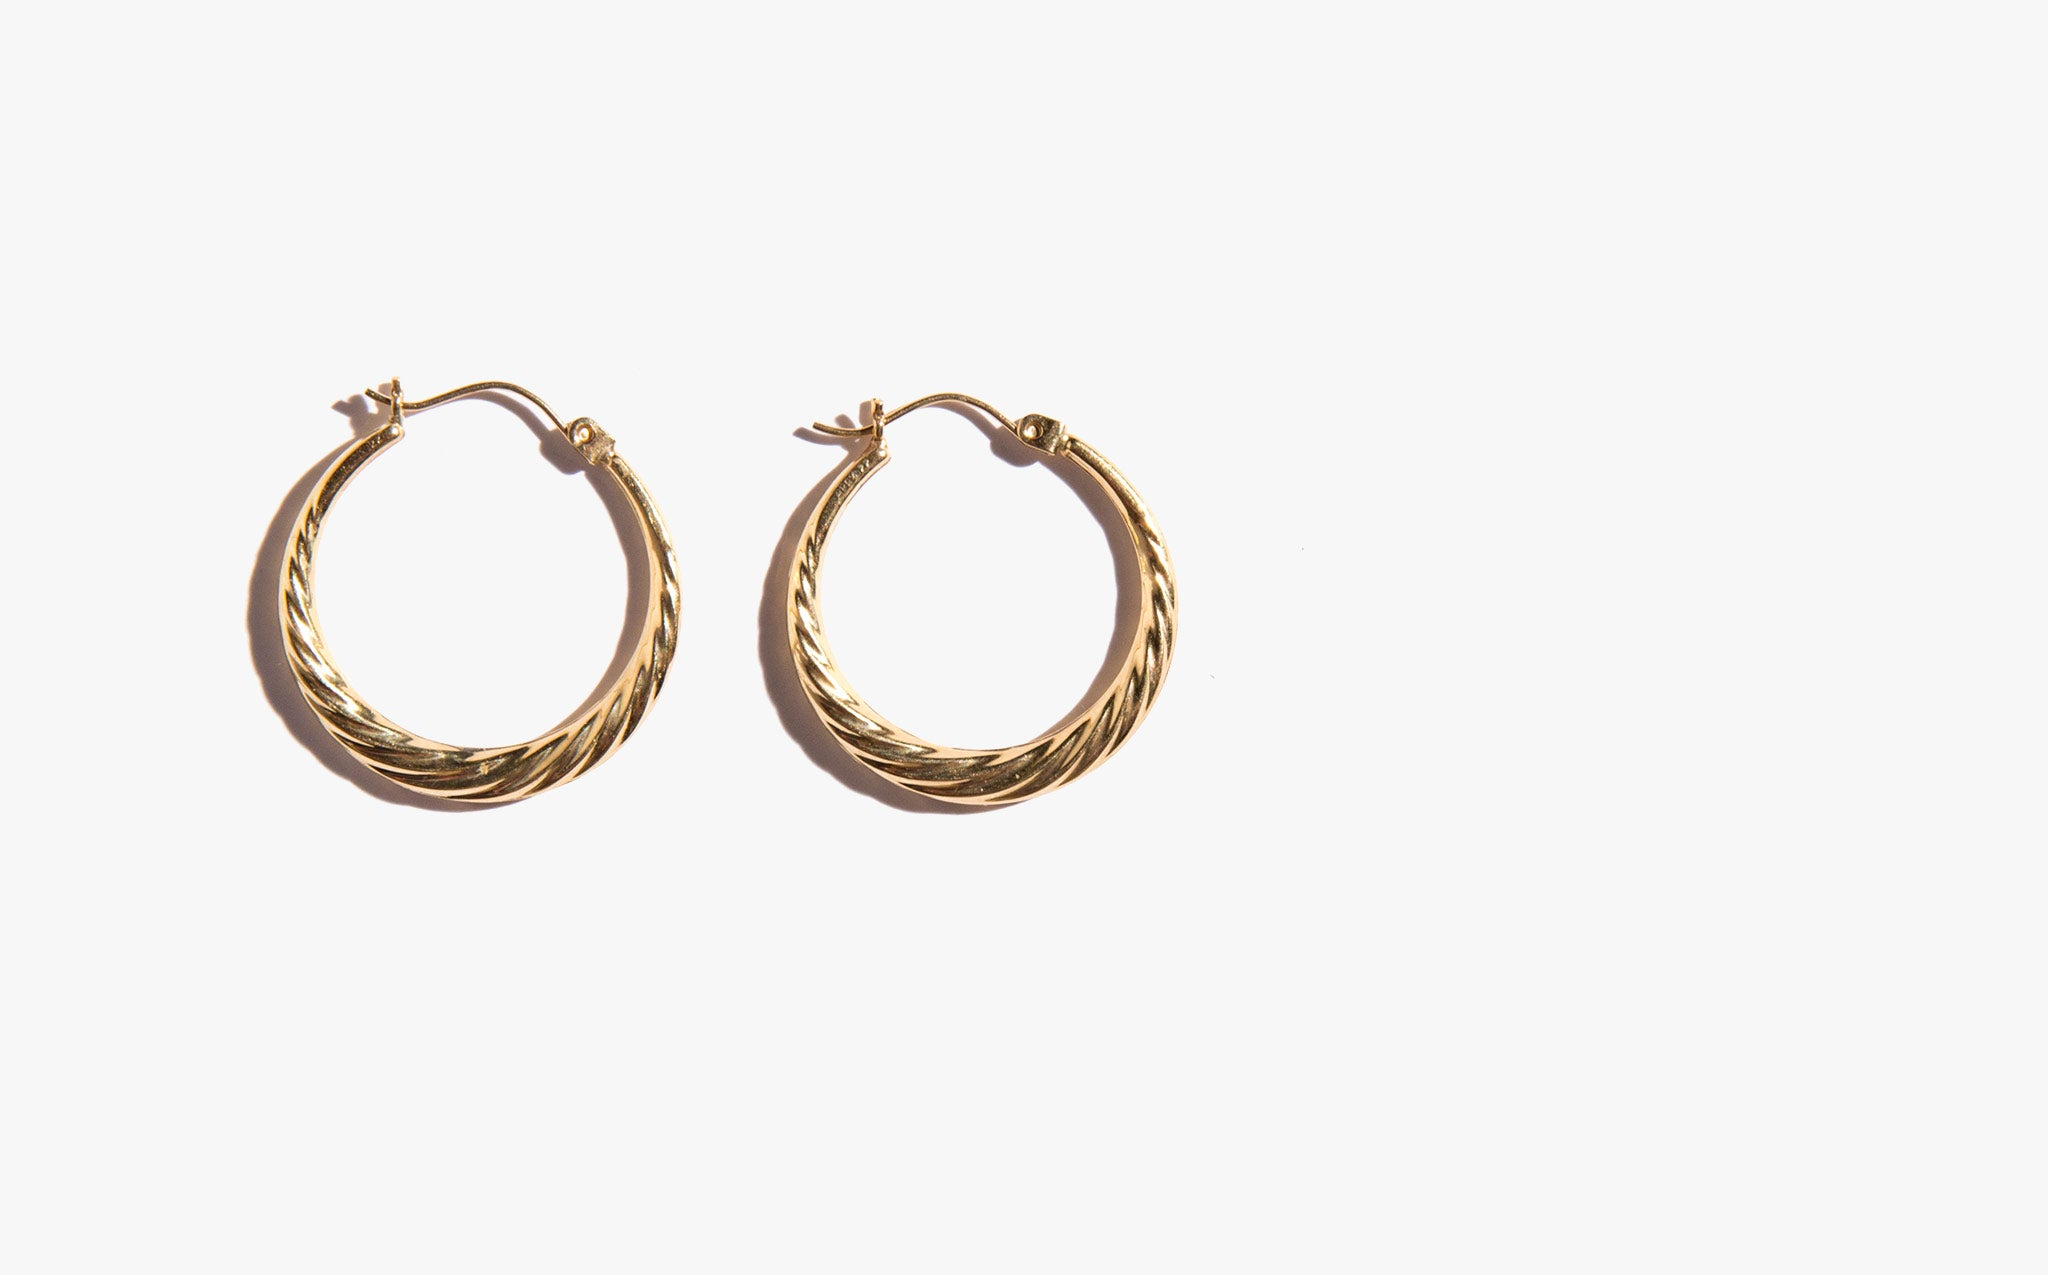 14K Gold Twist Hoops